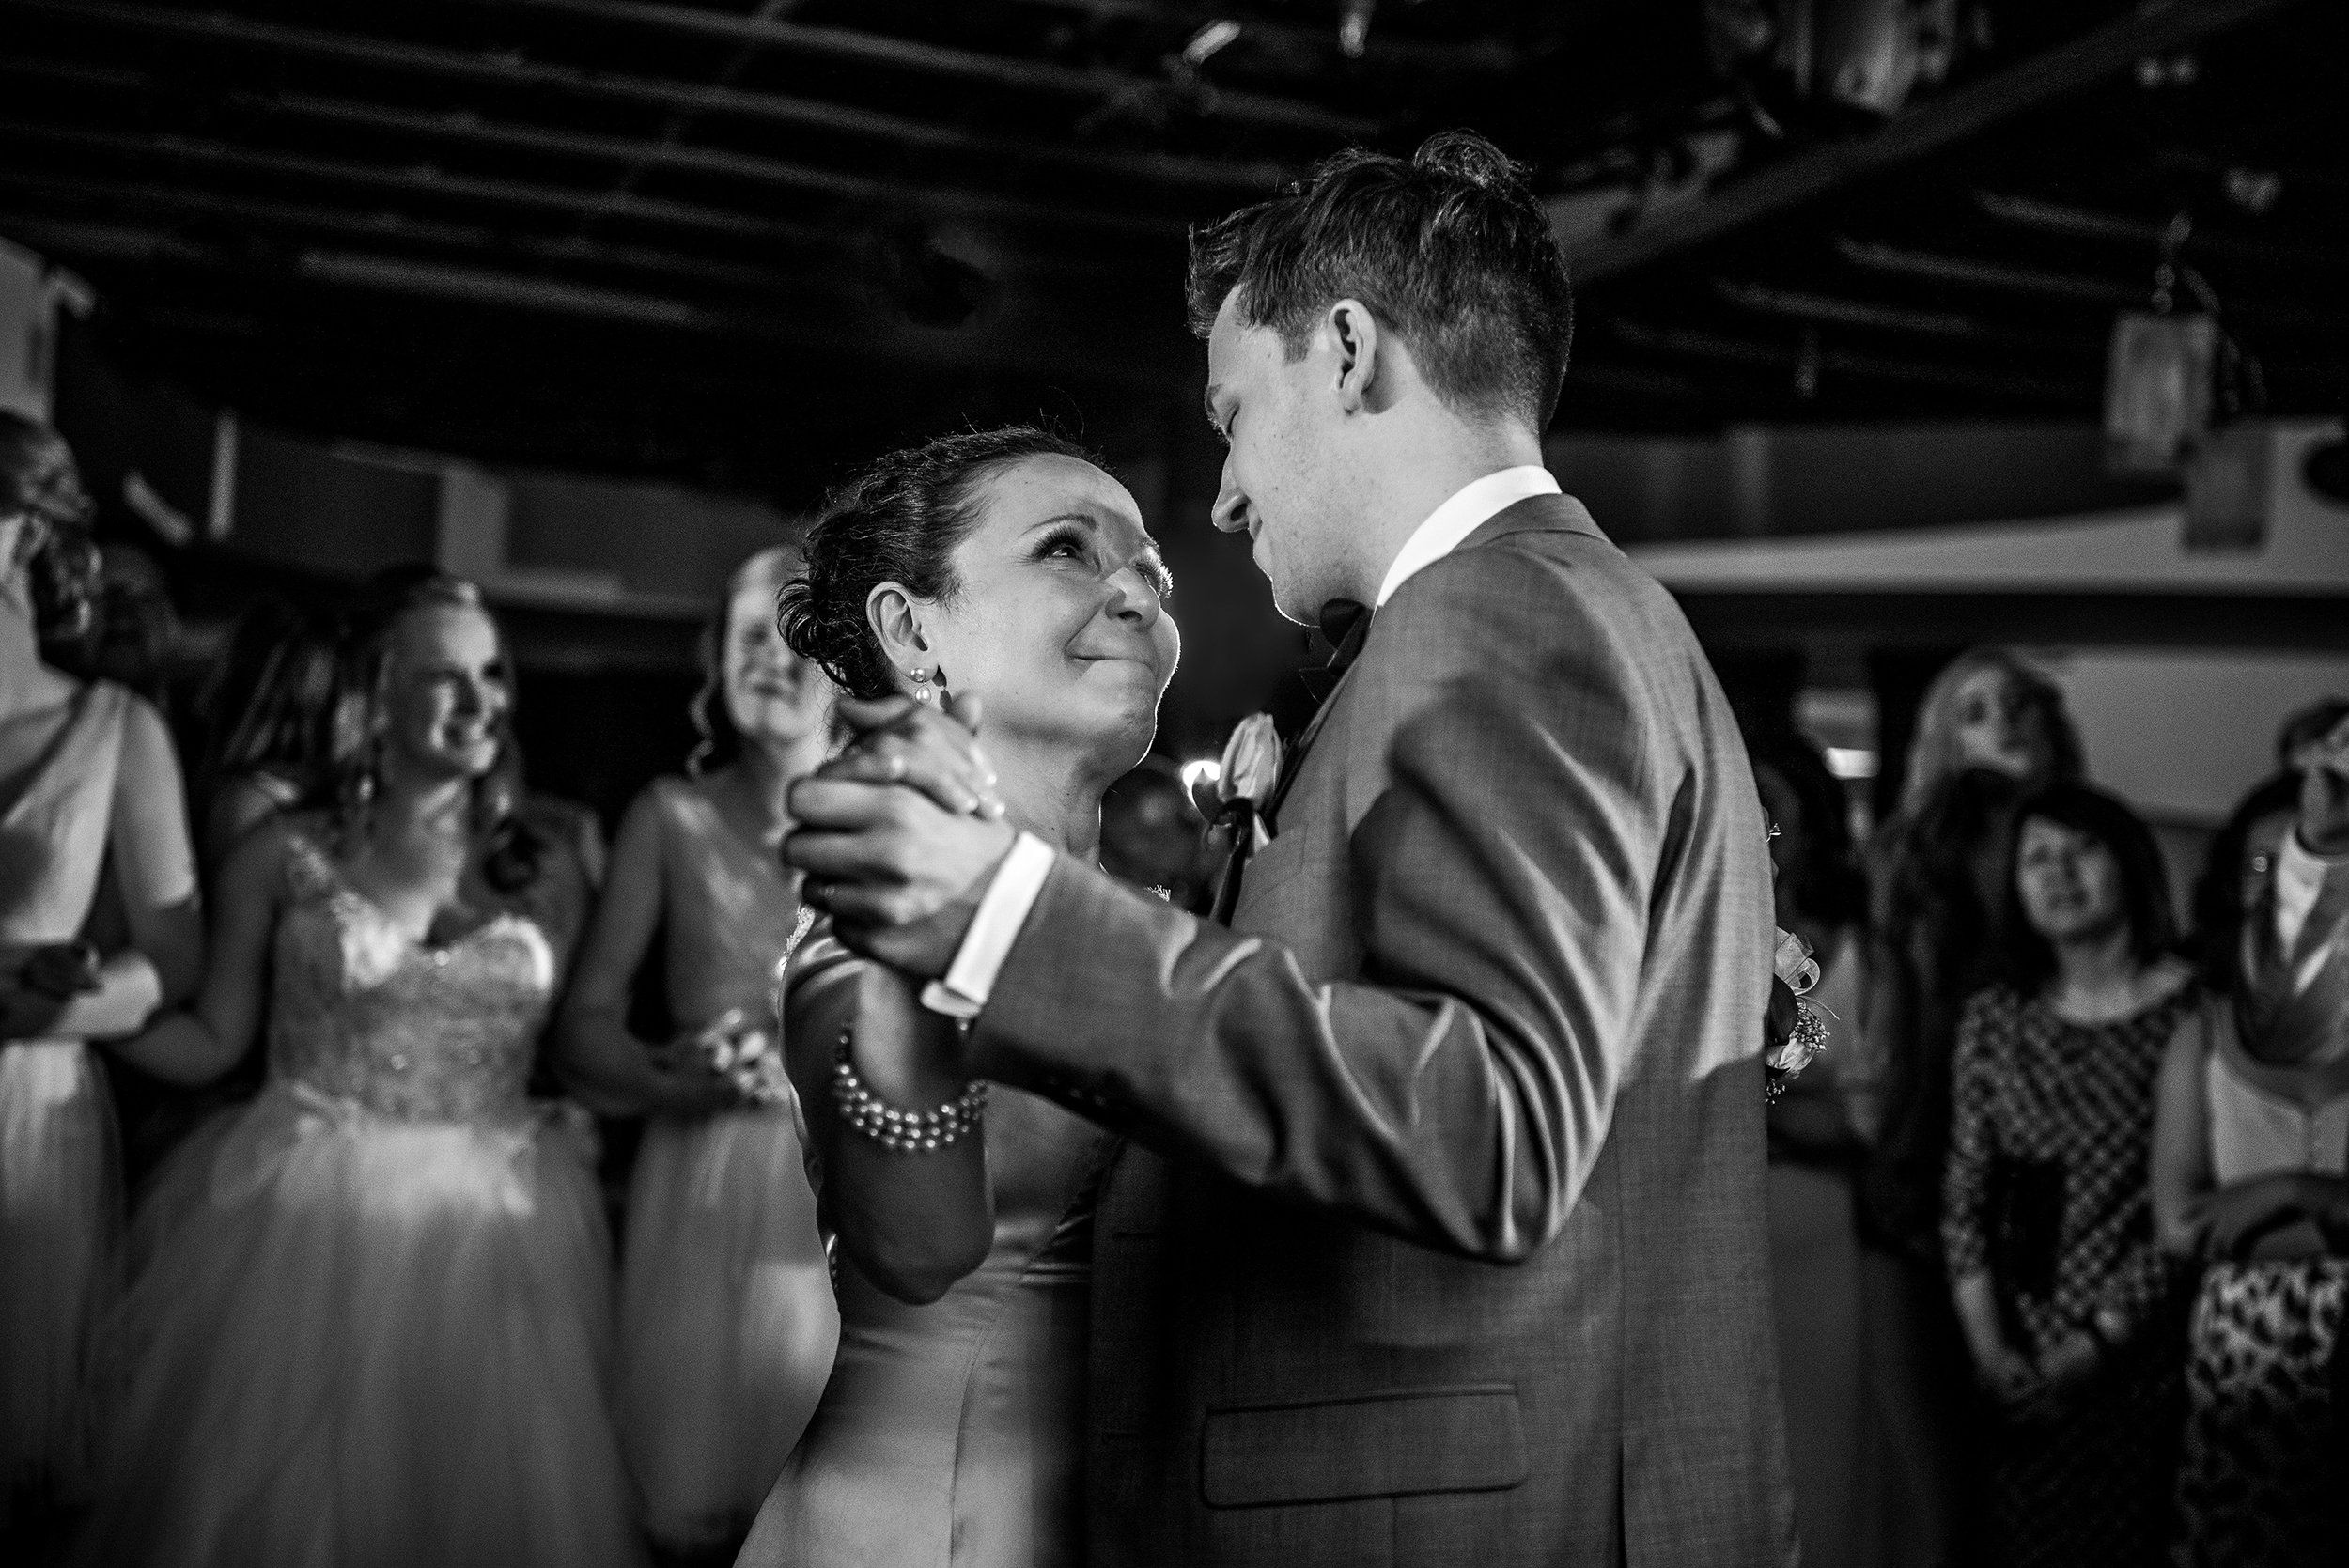 groom-dances-with-his-mother-during-a-wedding-reception-at-a-lago-wedding-ottawa.jpg